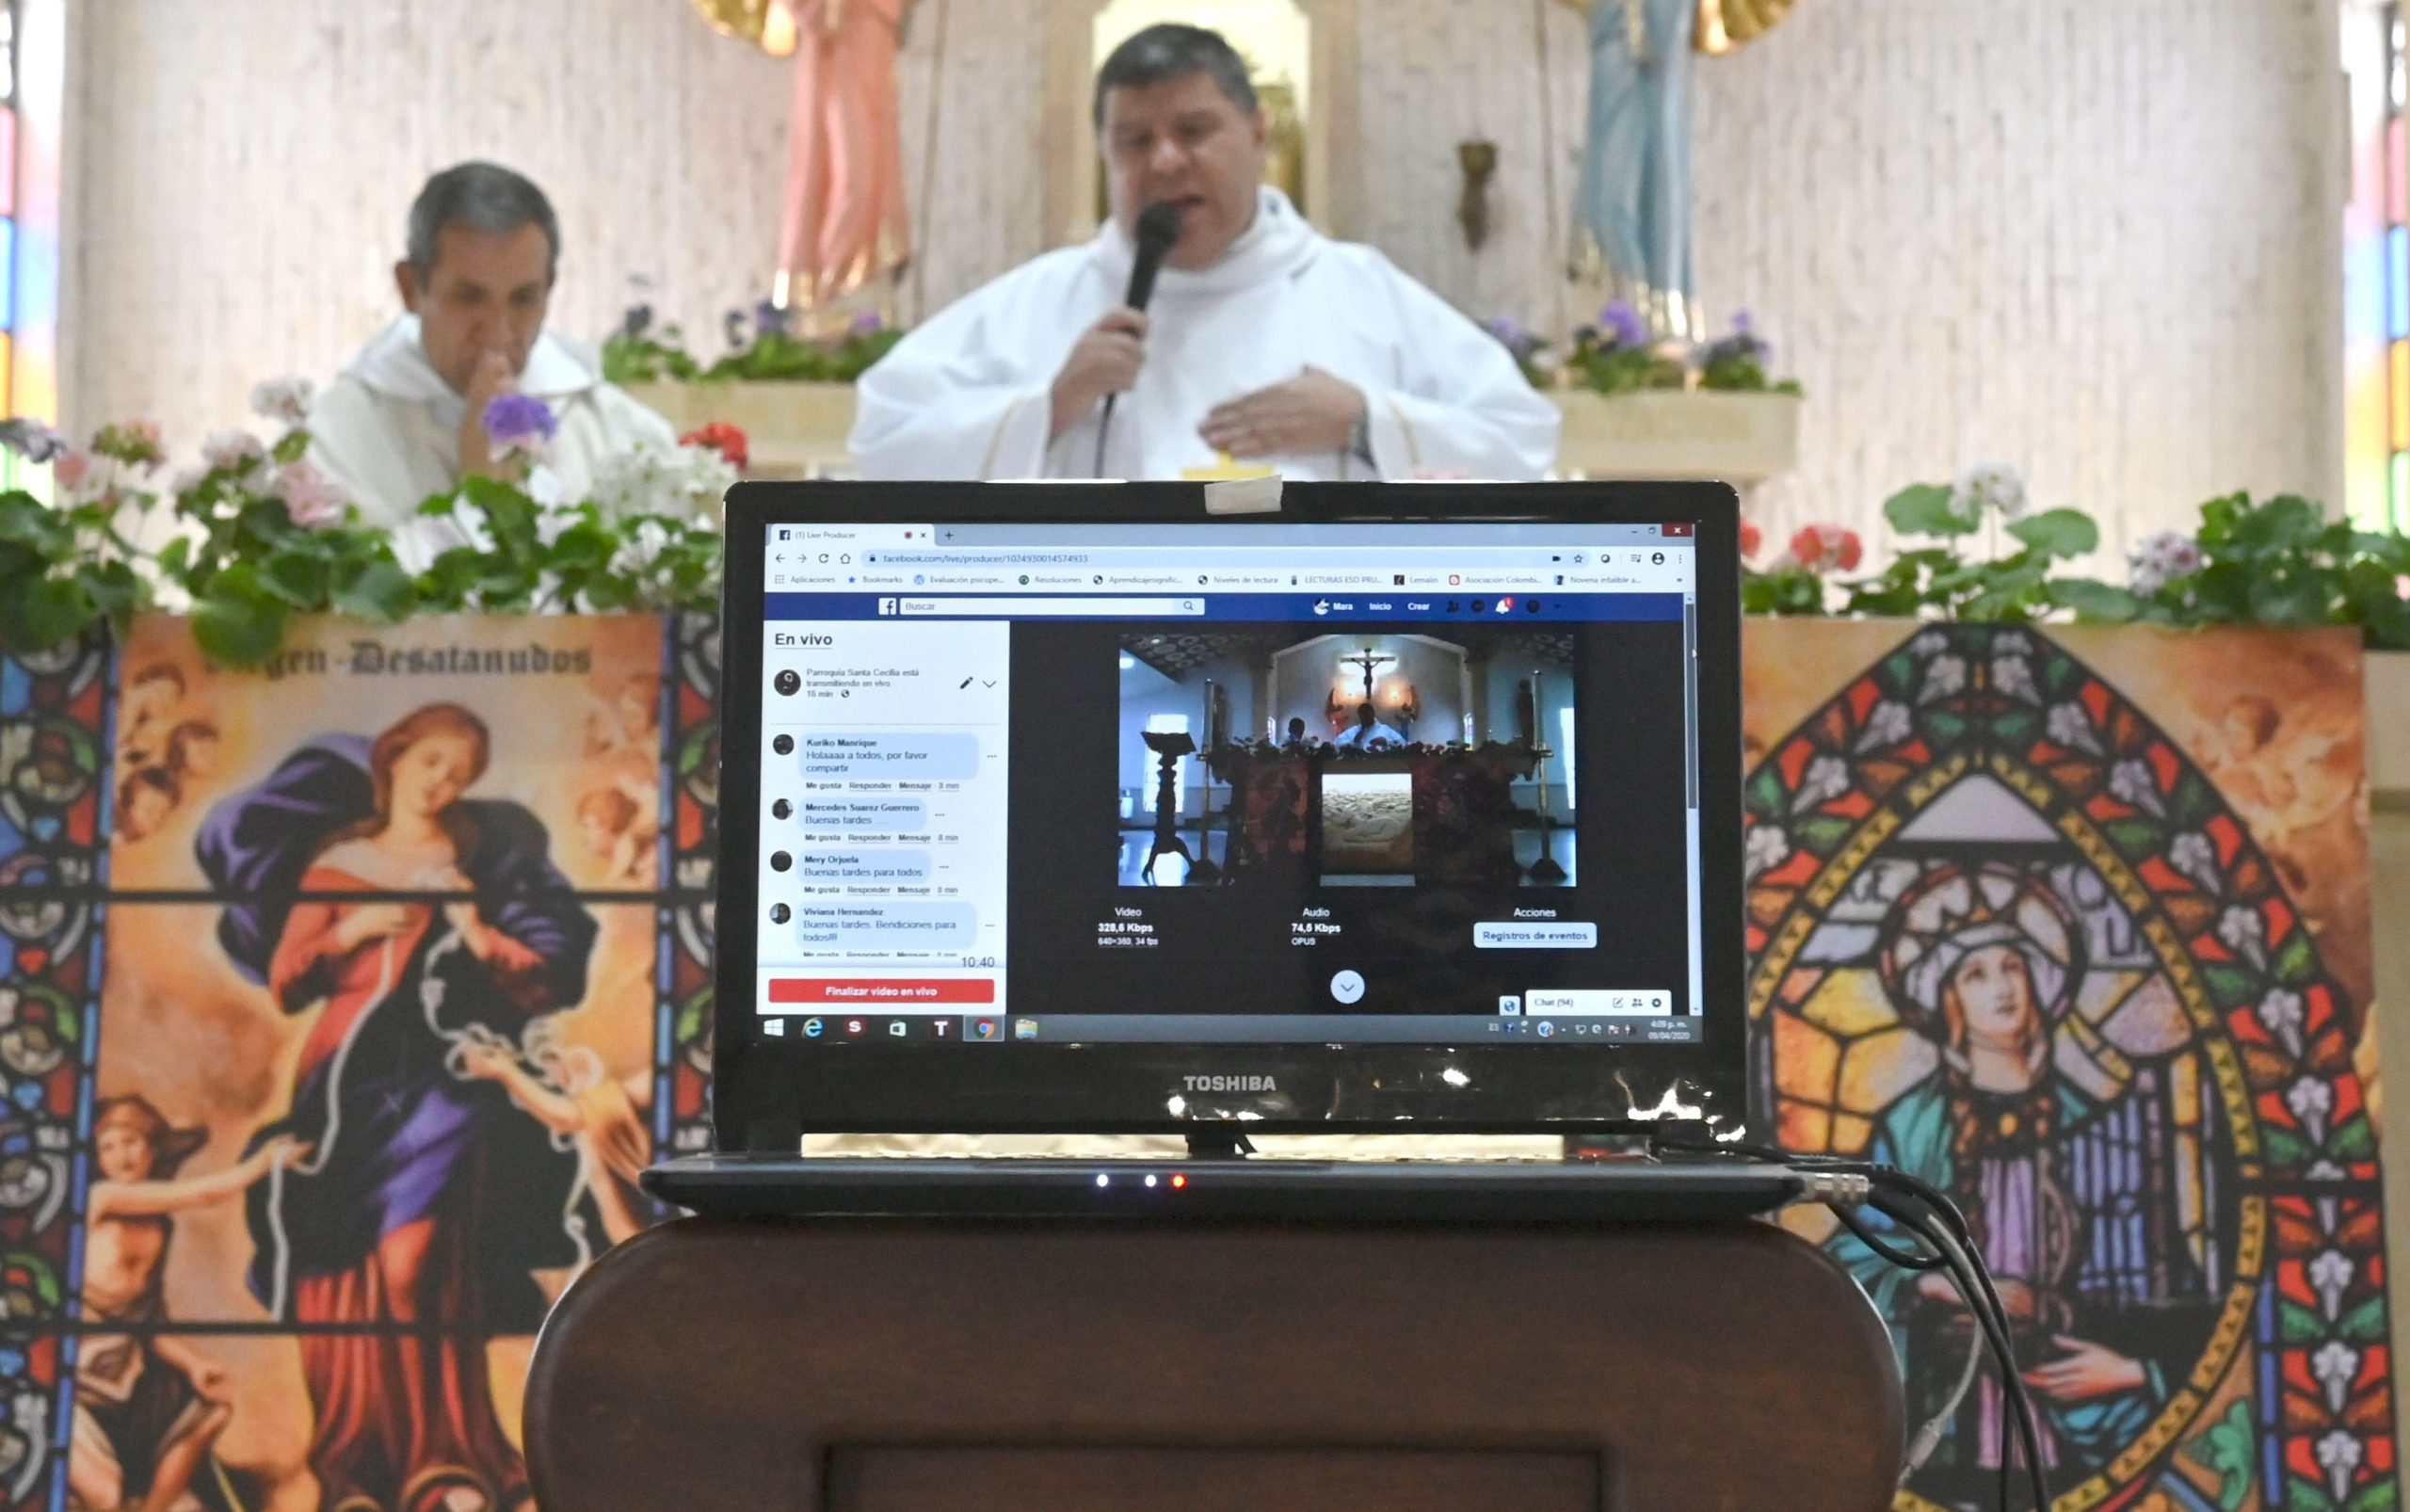 Colombian priest Mauricio Cuellar (C) gives mass from the empty Santa Cecilia church in Bogota to online parishioners as a preventive measure against the spread of the novel coronavirus COVID-19, on April 9, 2020. - Colombia extended mandatory preventive isolation due to COVID-19 until at least April 27. (Photo by Raul ARBOLEDA / AFP)